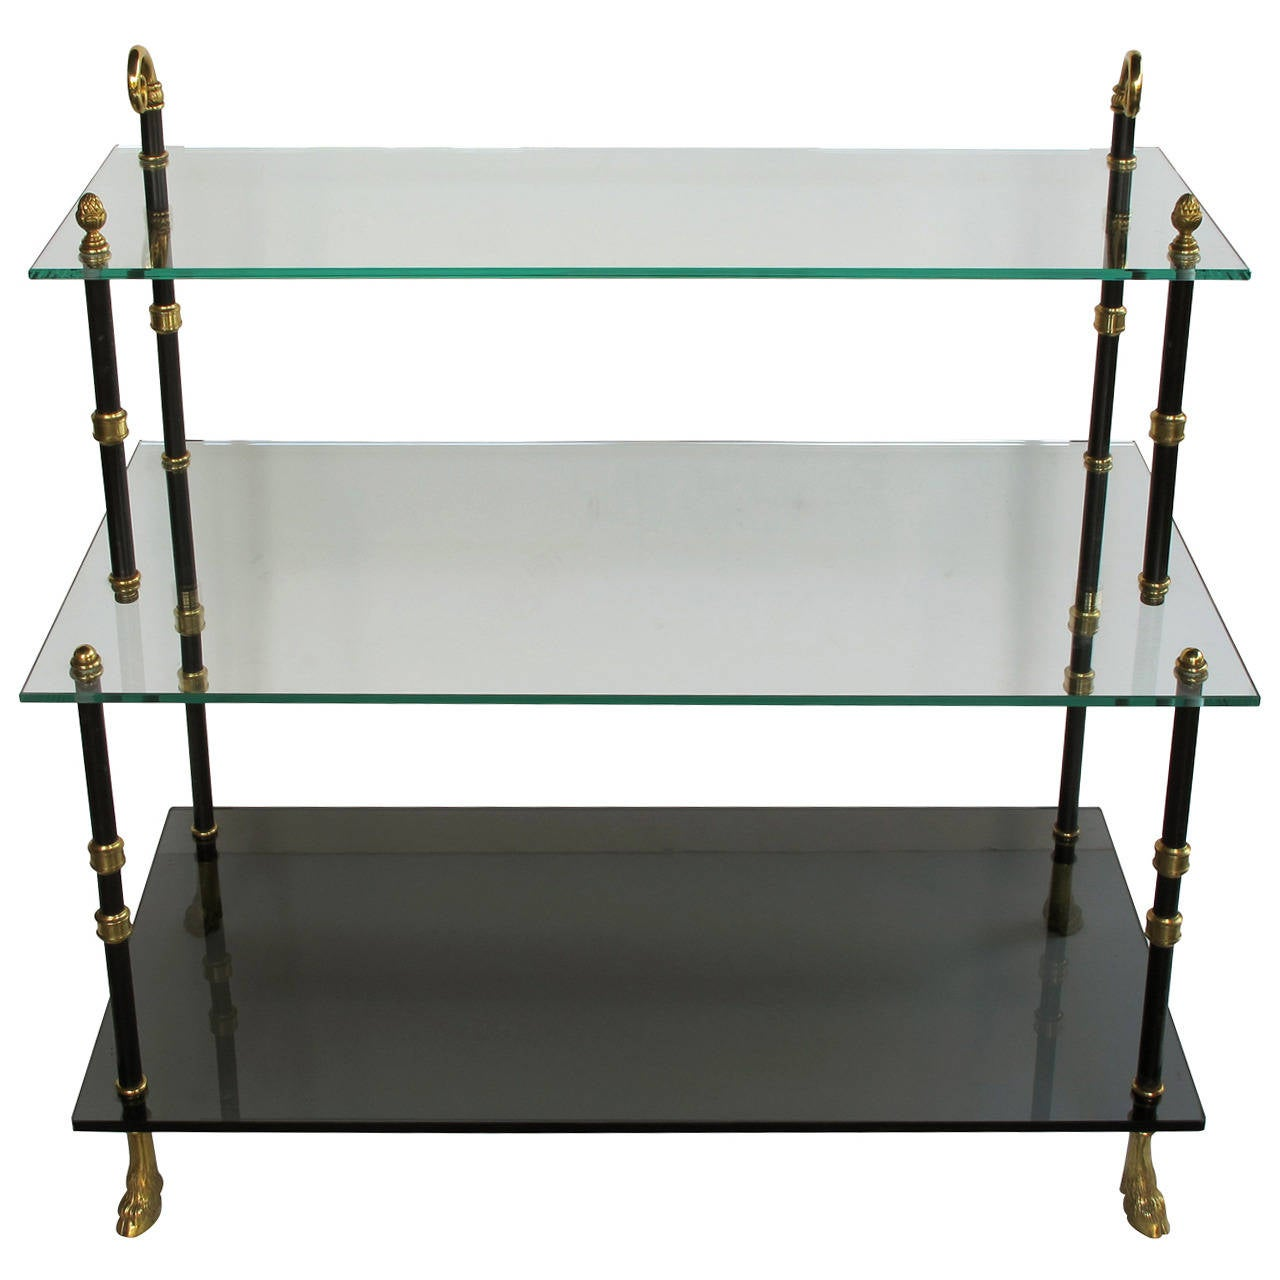 good quality french threetiered etagere with glass shelves by maison jansen 1